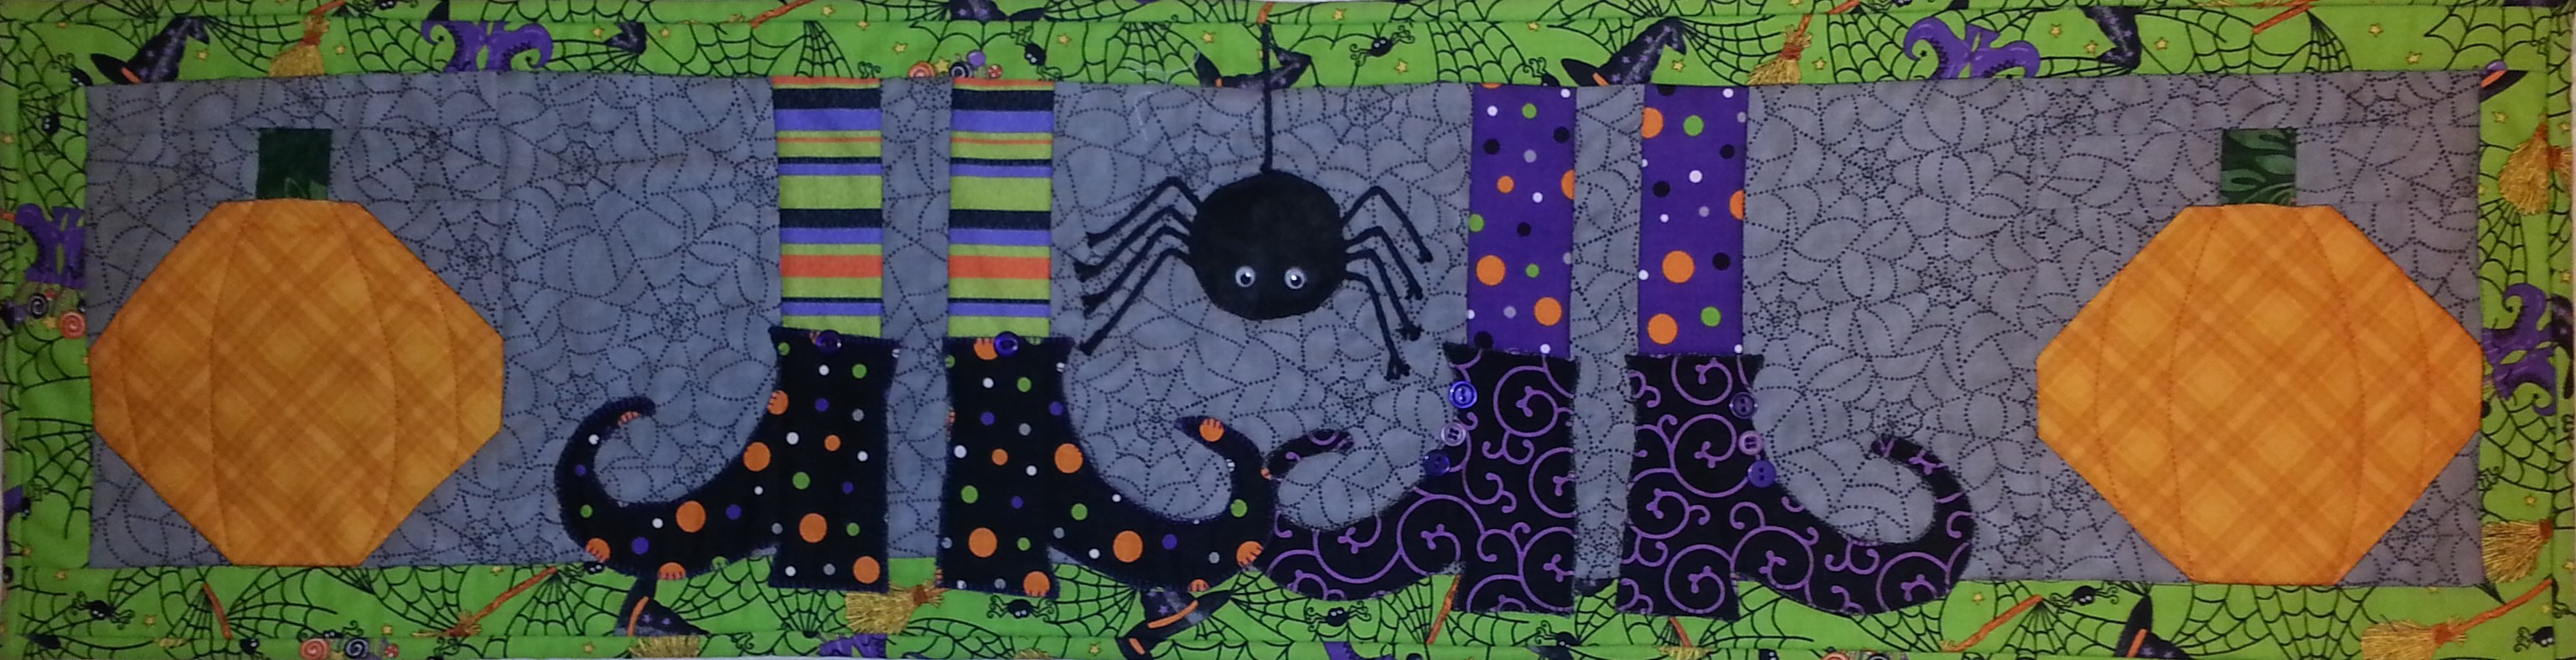 Pattern Eye of Newt (RxR2014) by Tish Wright for Cotton Candy Quilts